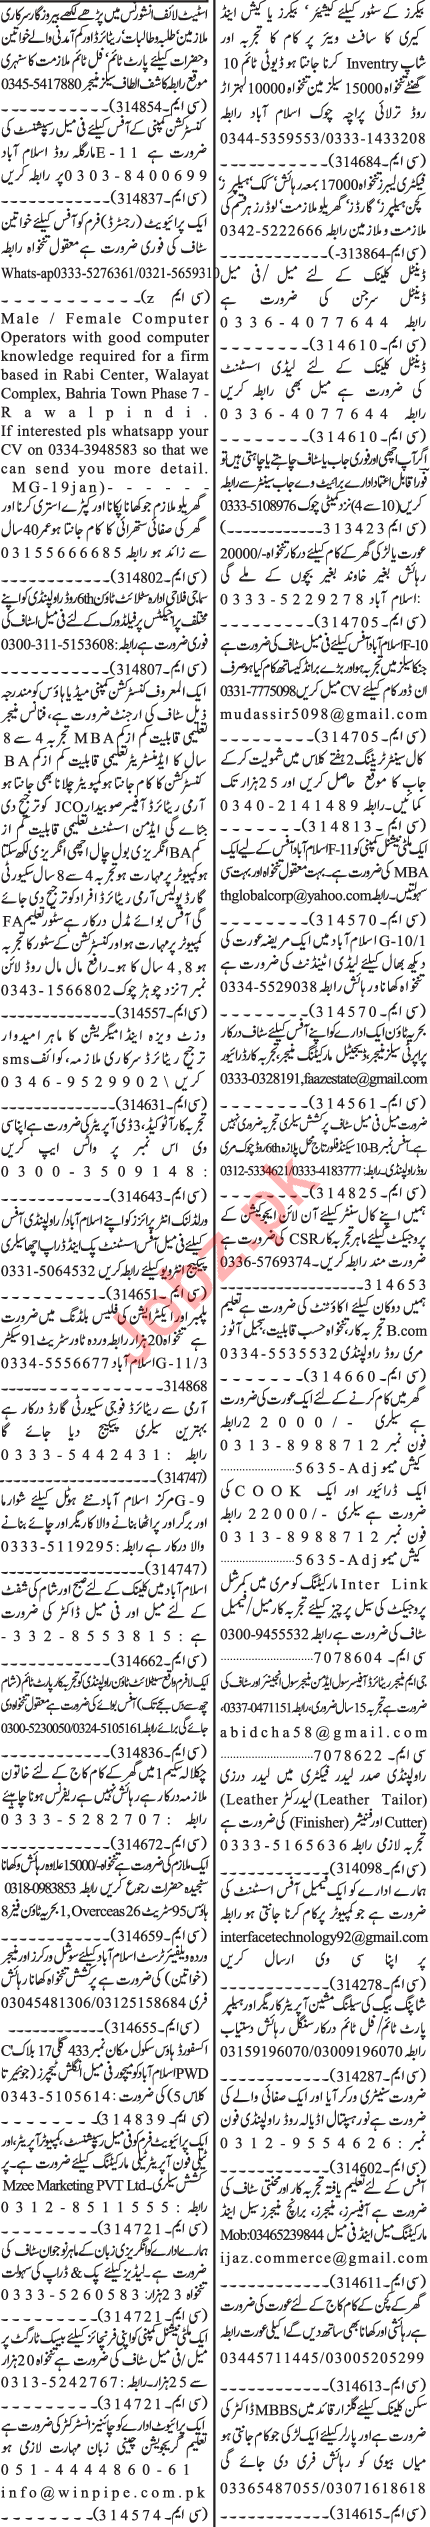 Jang Sunday Classified Ads 26 Jan 2020 for Multiple Staff